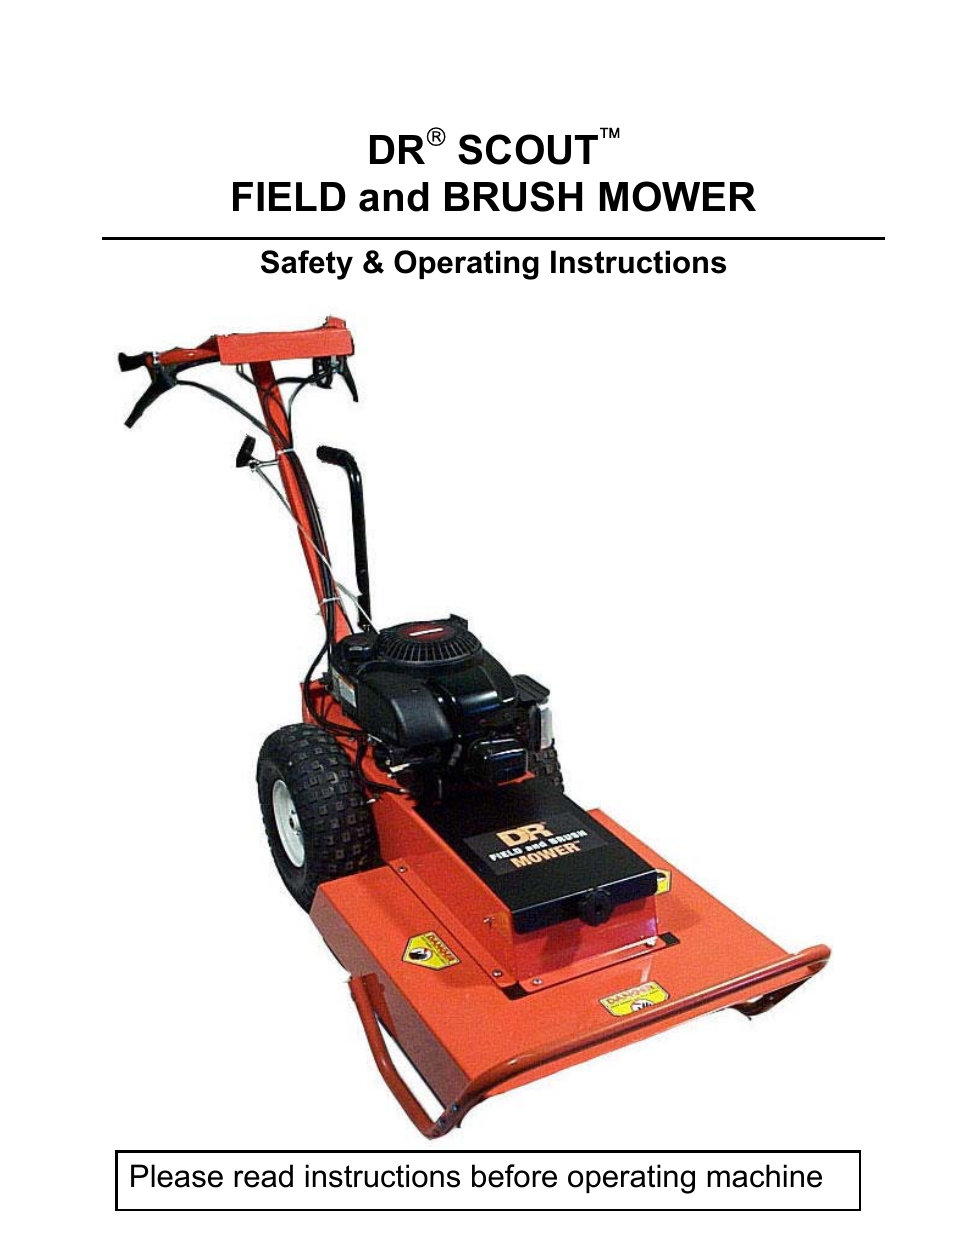 Country Home Products DR SCOUT FIELD and BRUSH MOWER User